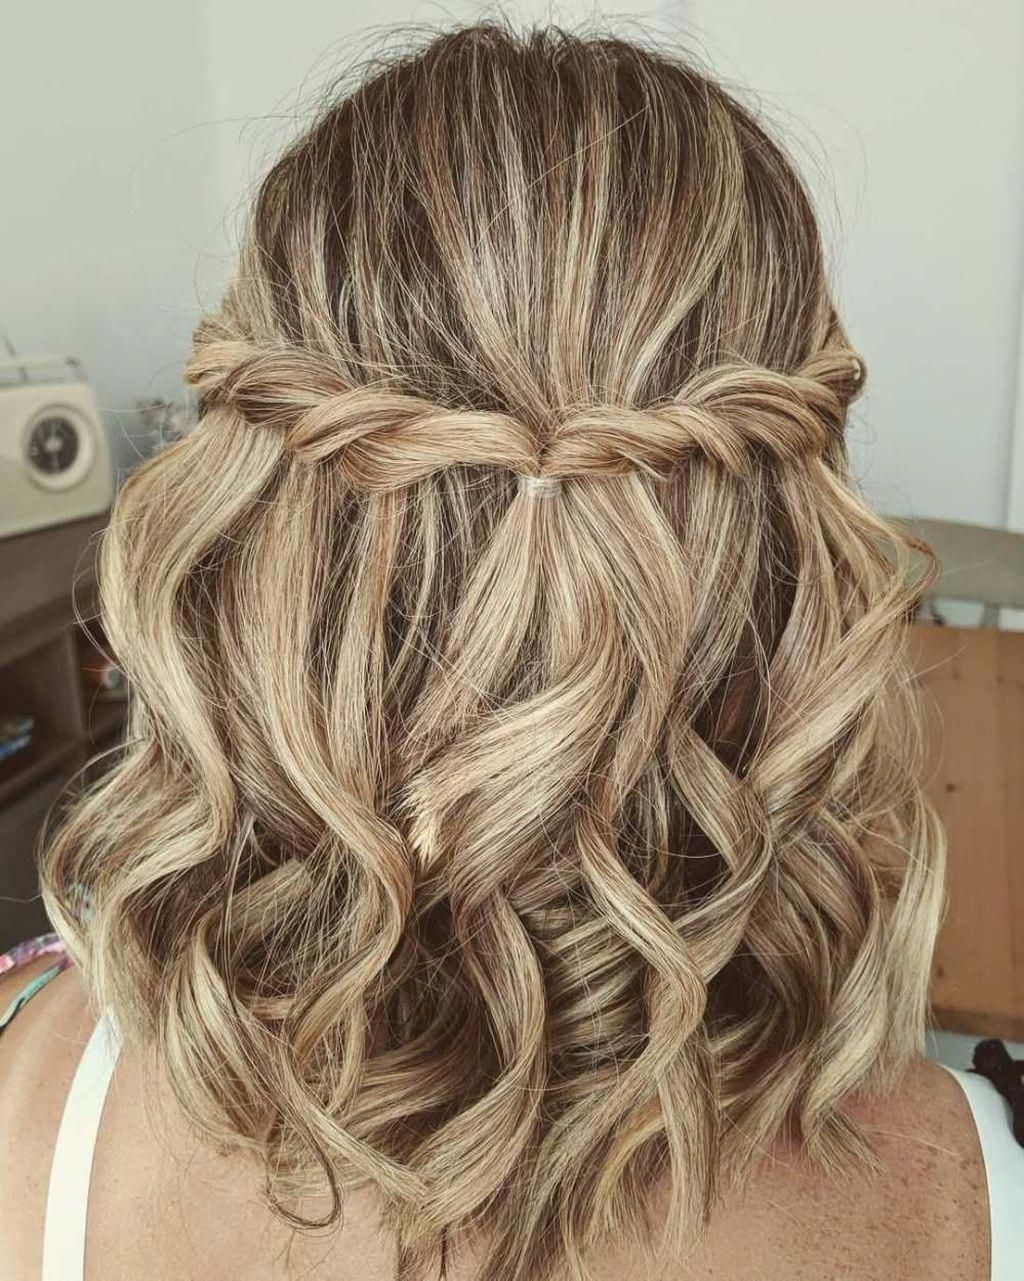 50 Newest Short Formal Hairstyles Ideas For Women - # ...